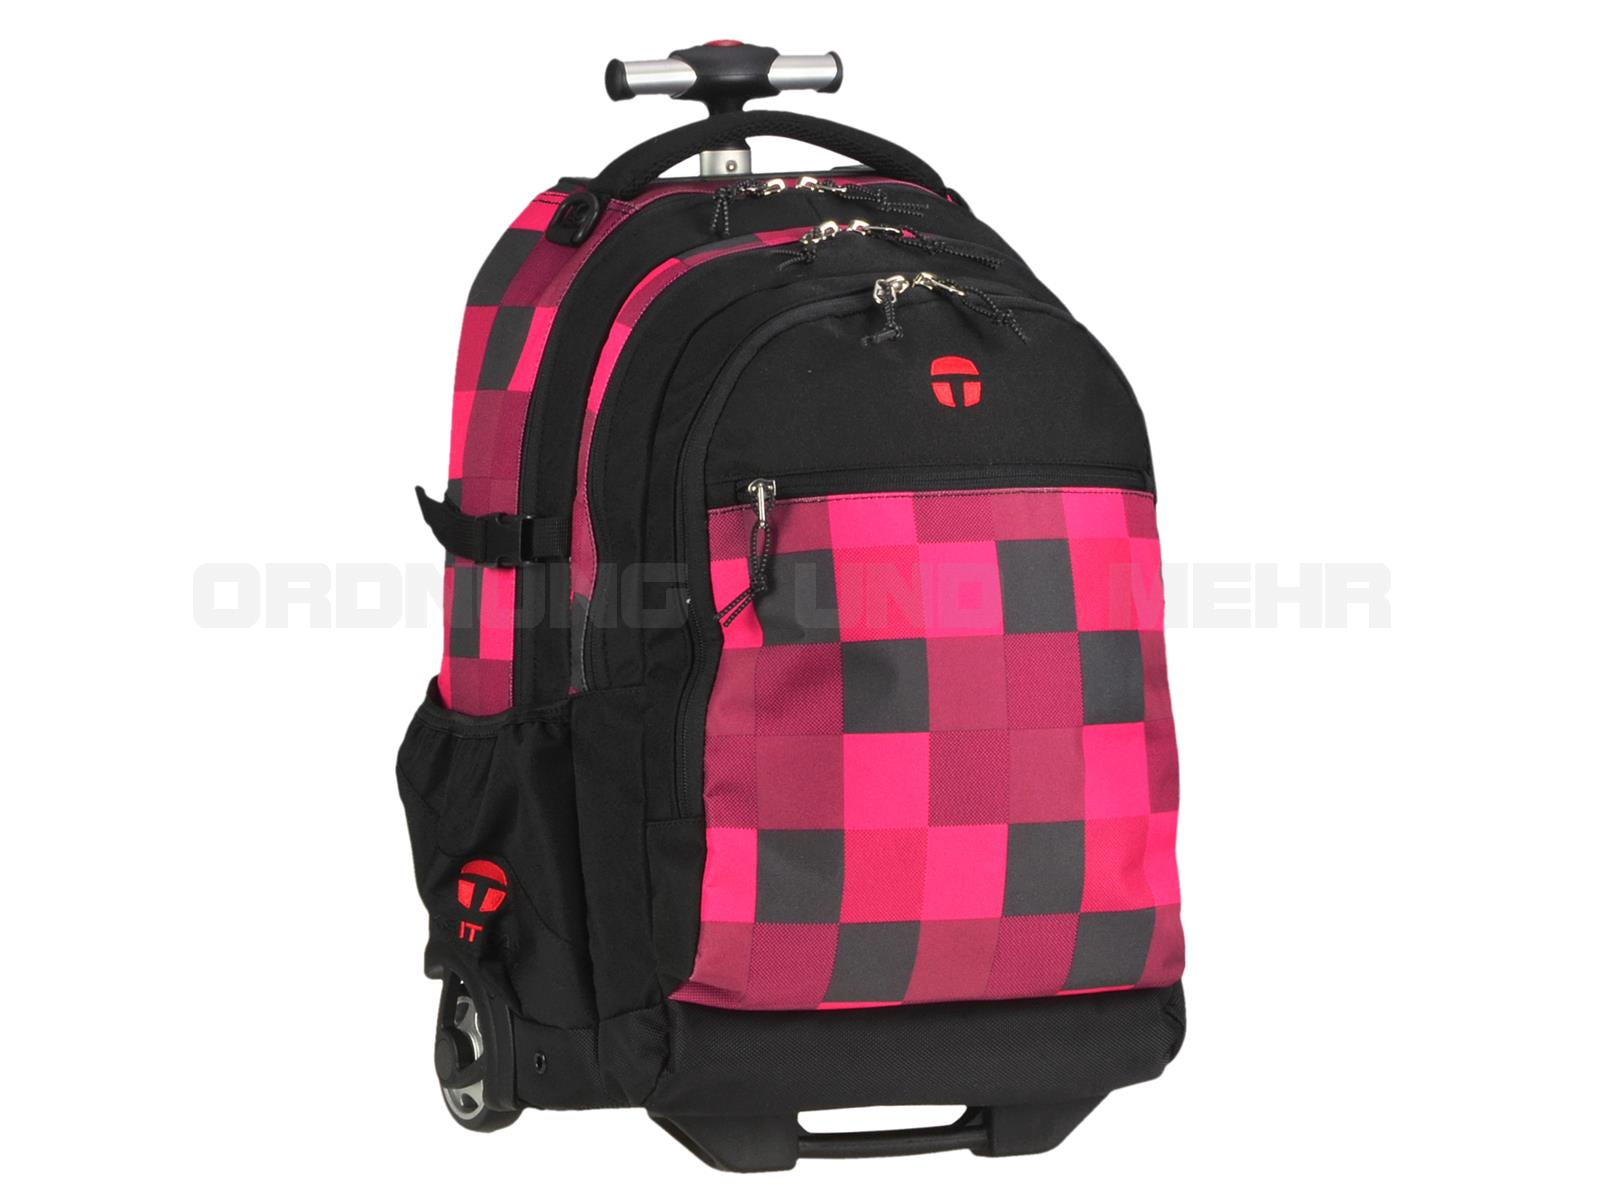 Take it Easy Rucksack Trolley FIRE in pink schwarz karo 28045-481-209